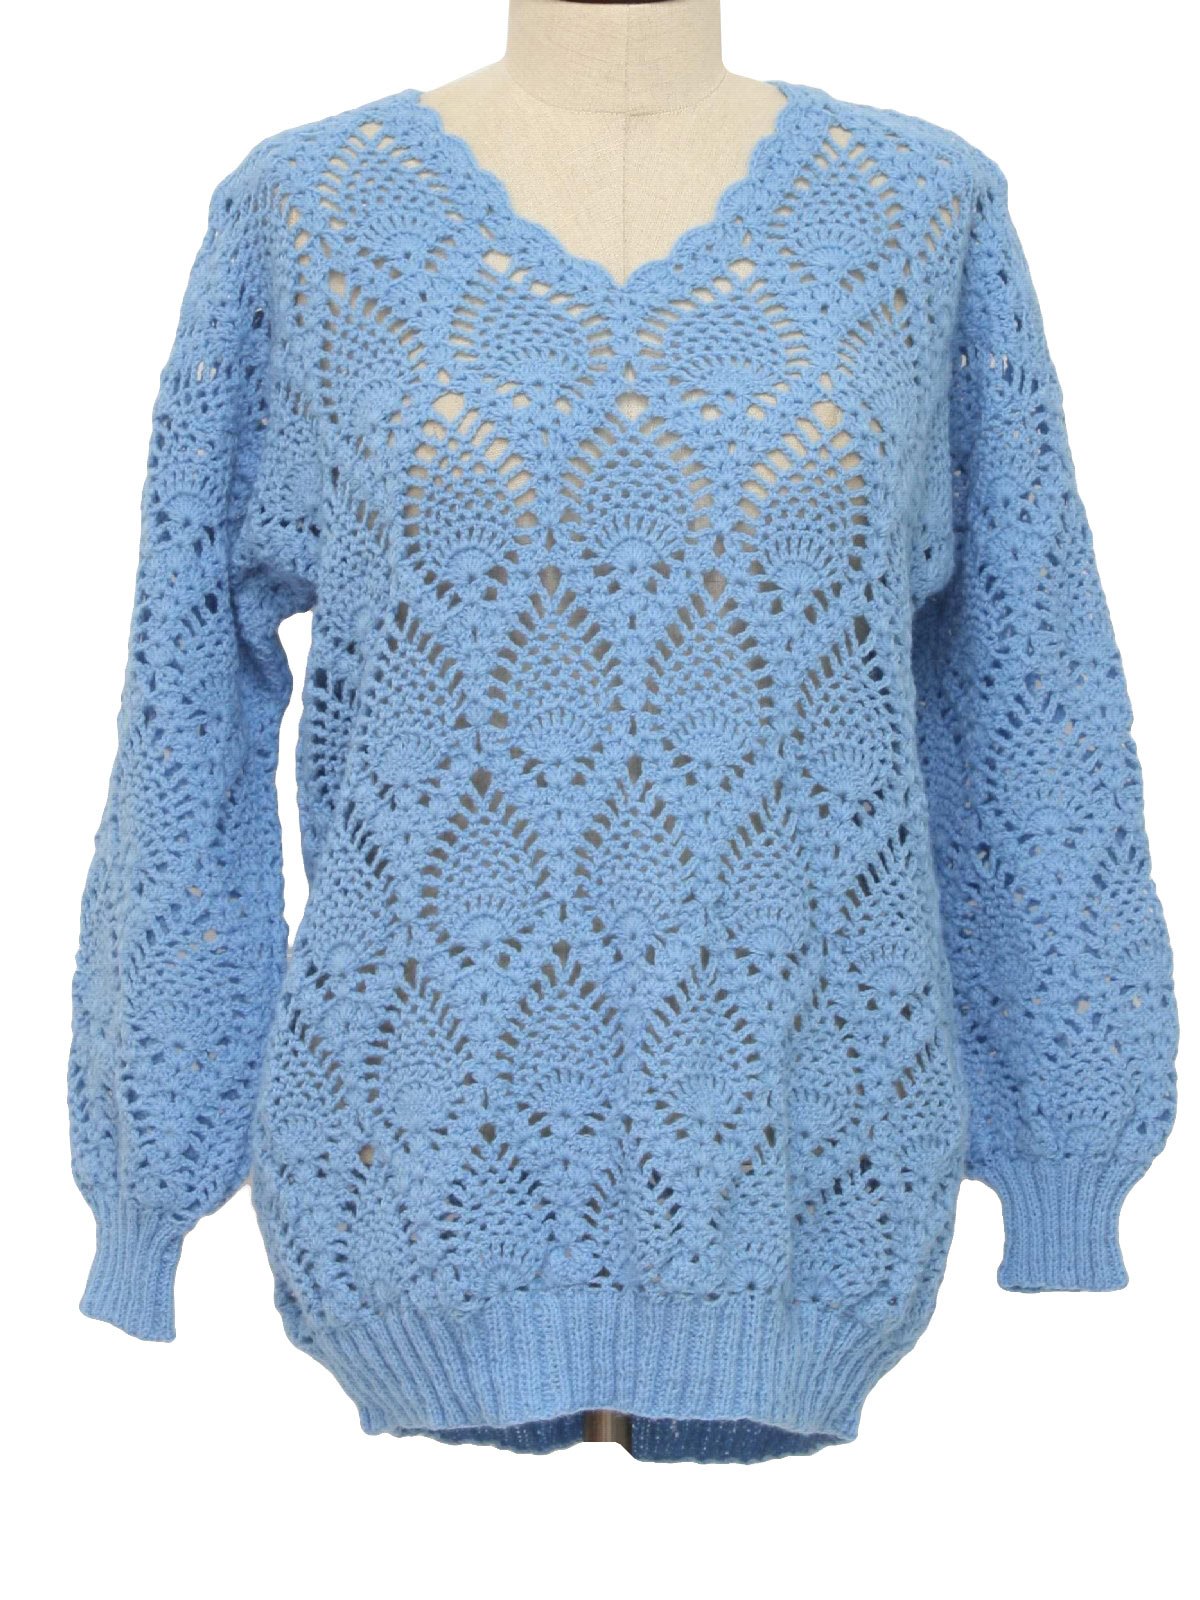 Free Crochet Pattern Sweater Pullover : How To Crochet A Pullover Sweater - Viewing Gallery